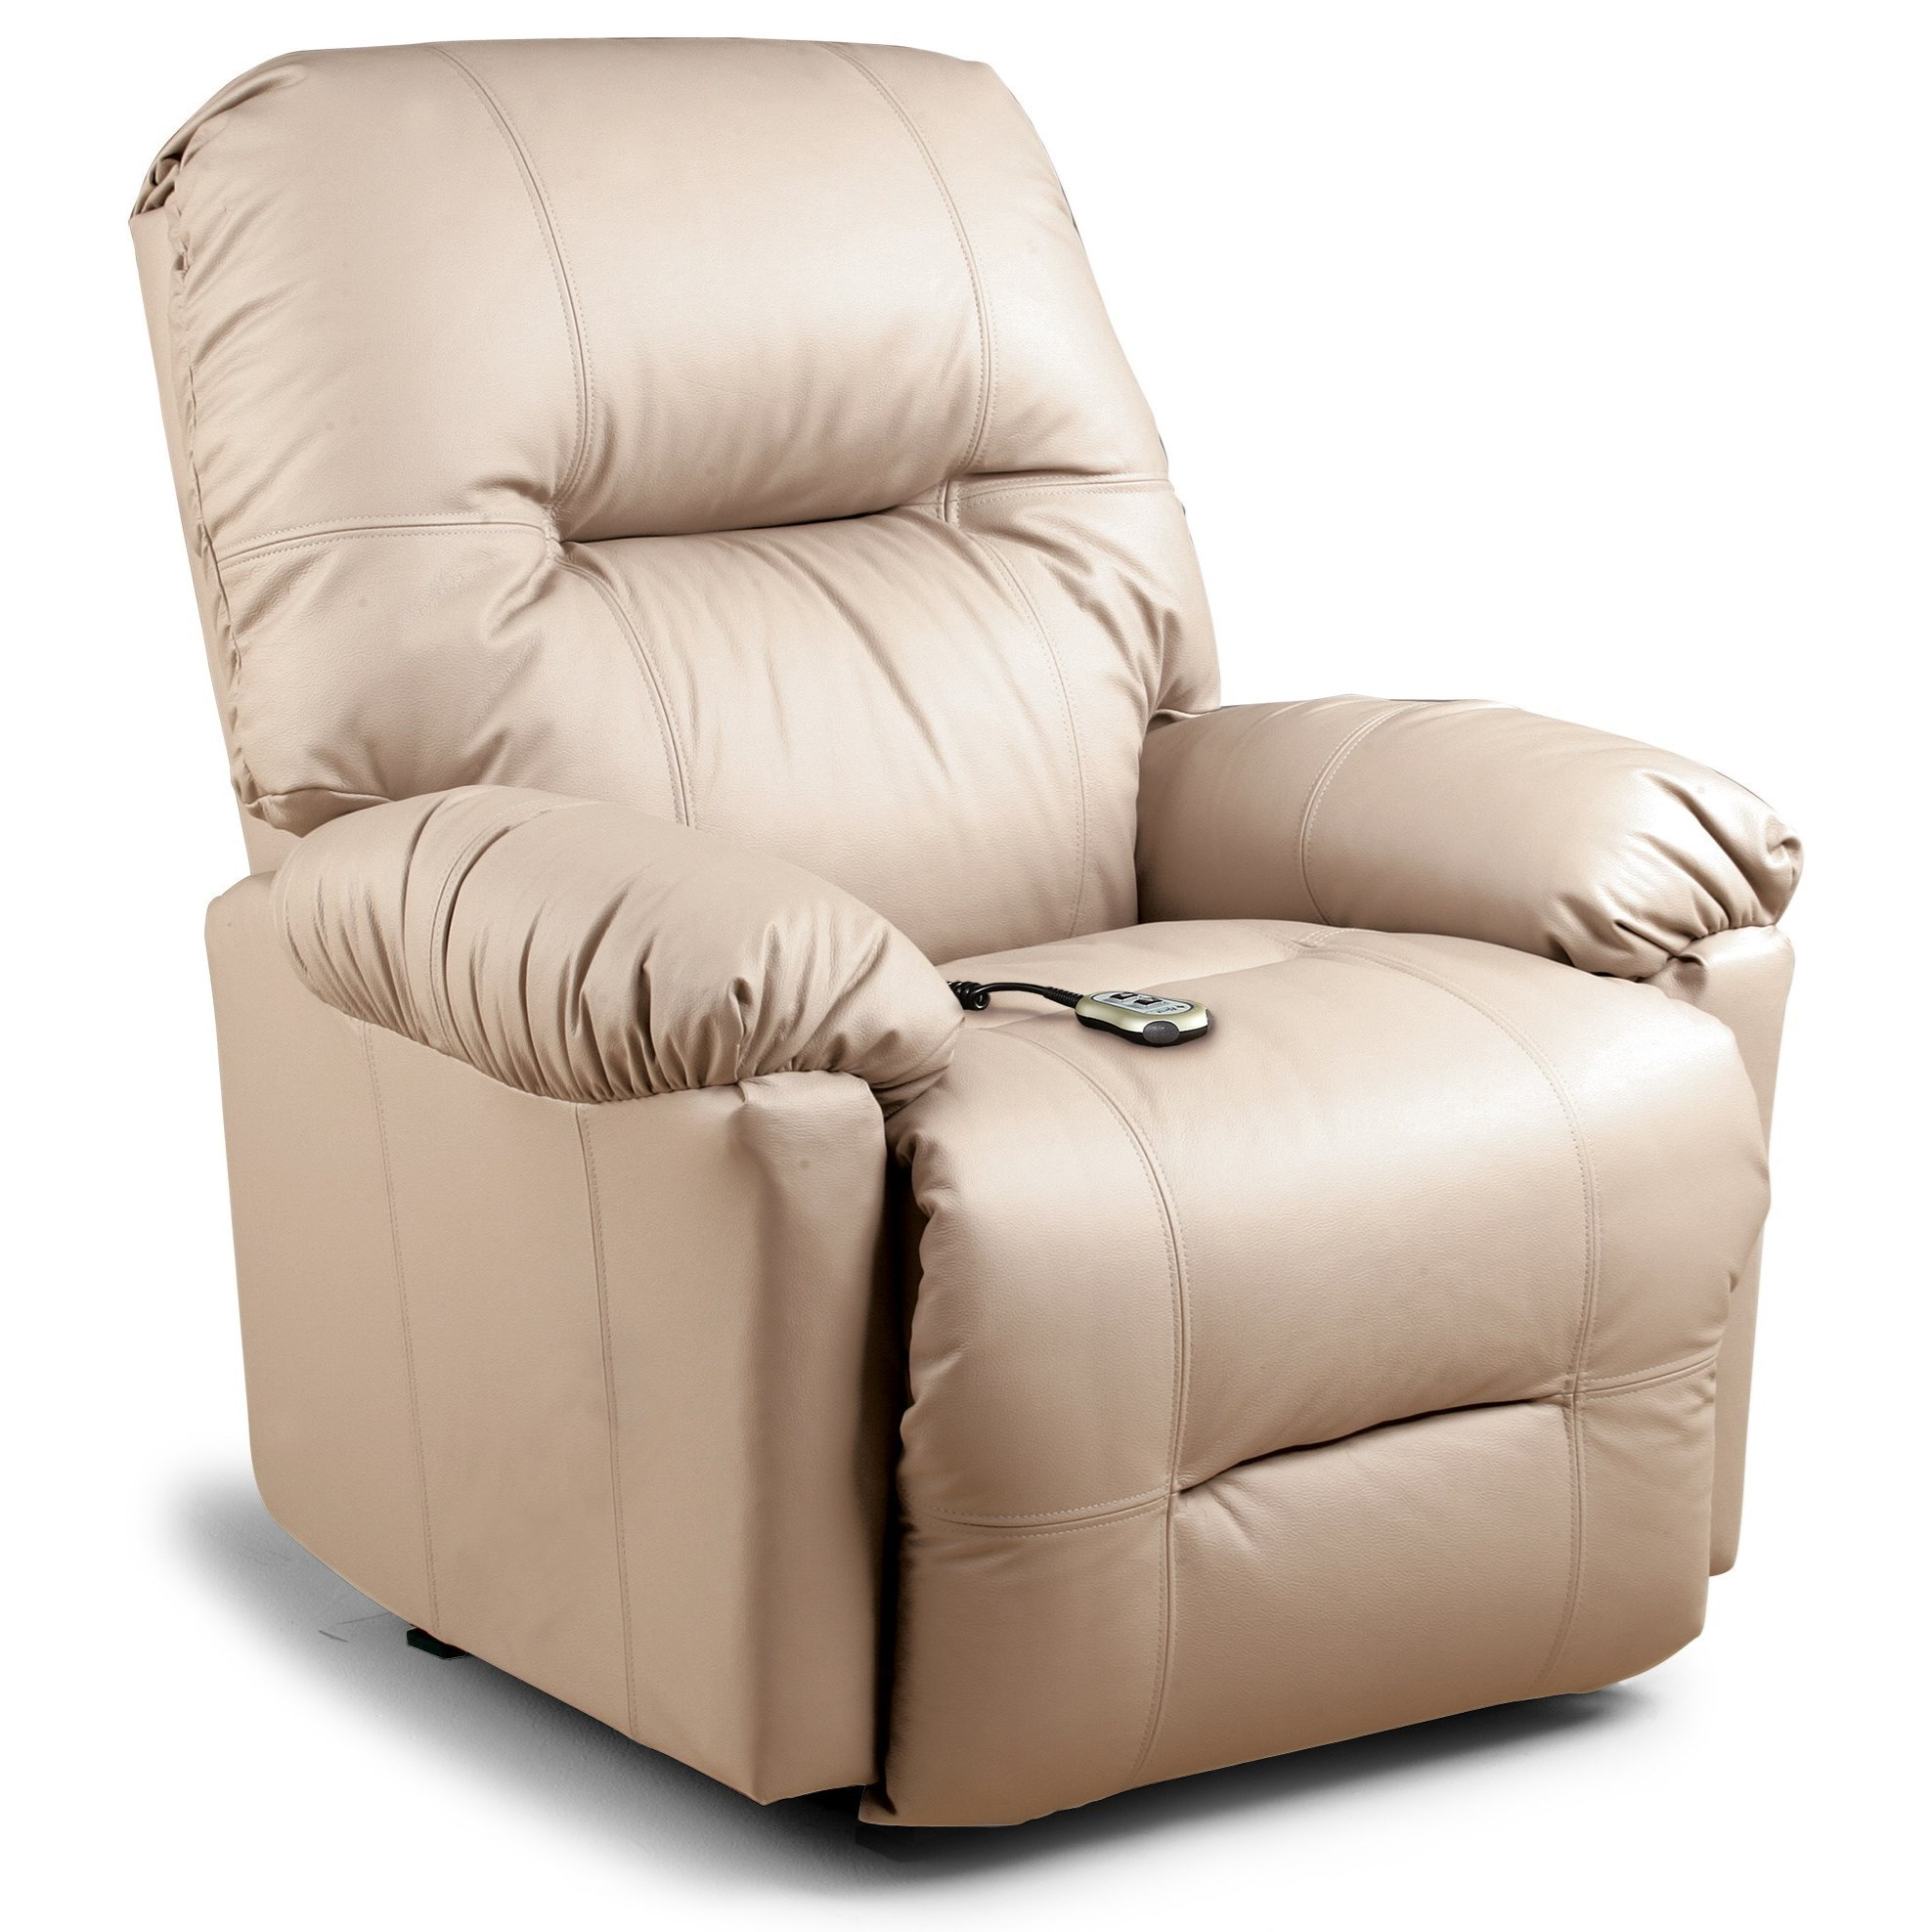 Best Home Furnishings Recliners   Petite Wynette Power Lift Reclining Chair    Novello Home Furnishings   Lift Recliner